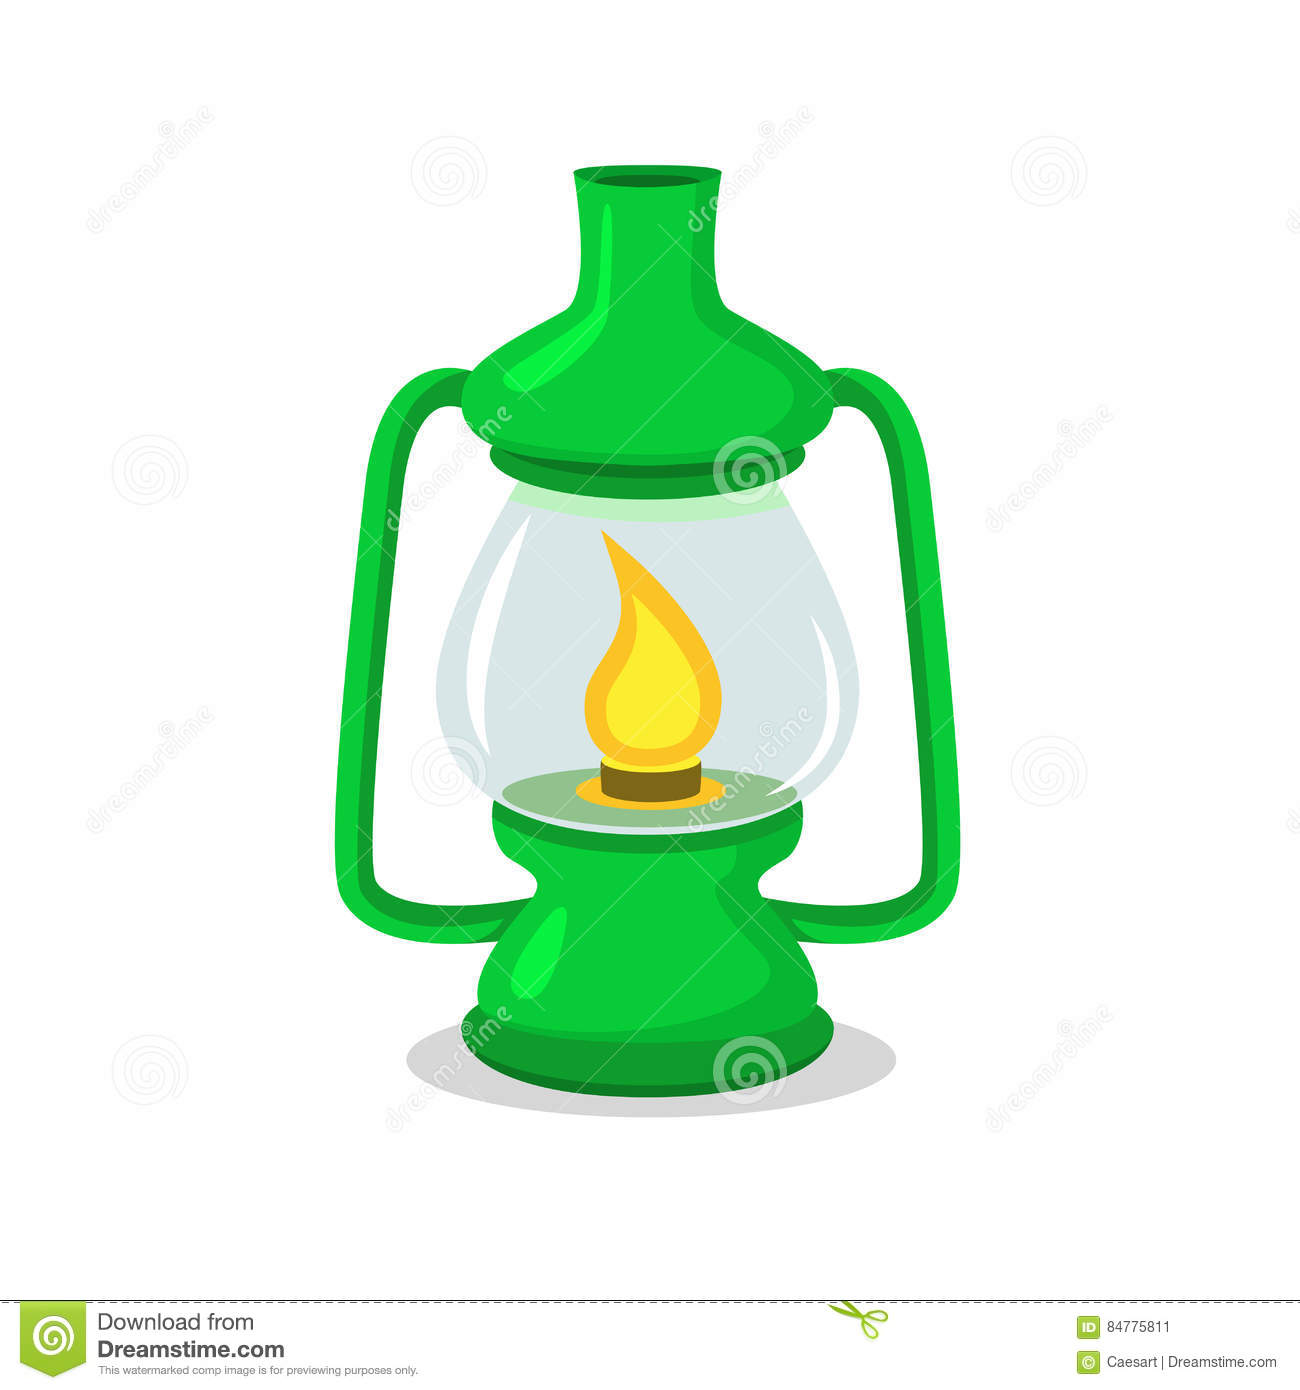 Vintage Green Camping Lantern On White In Flat And Cartoon Style